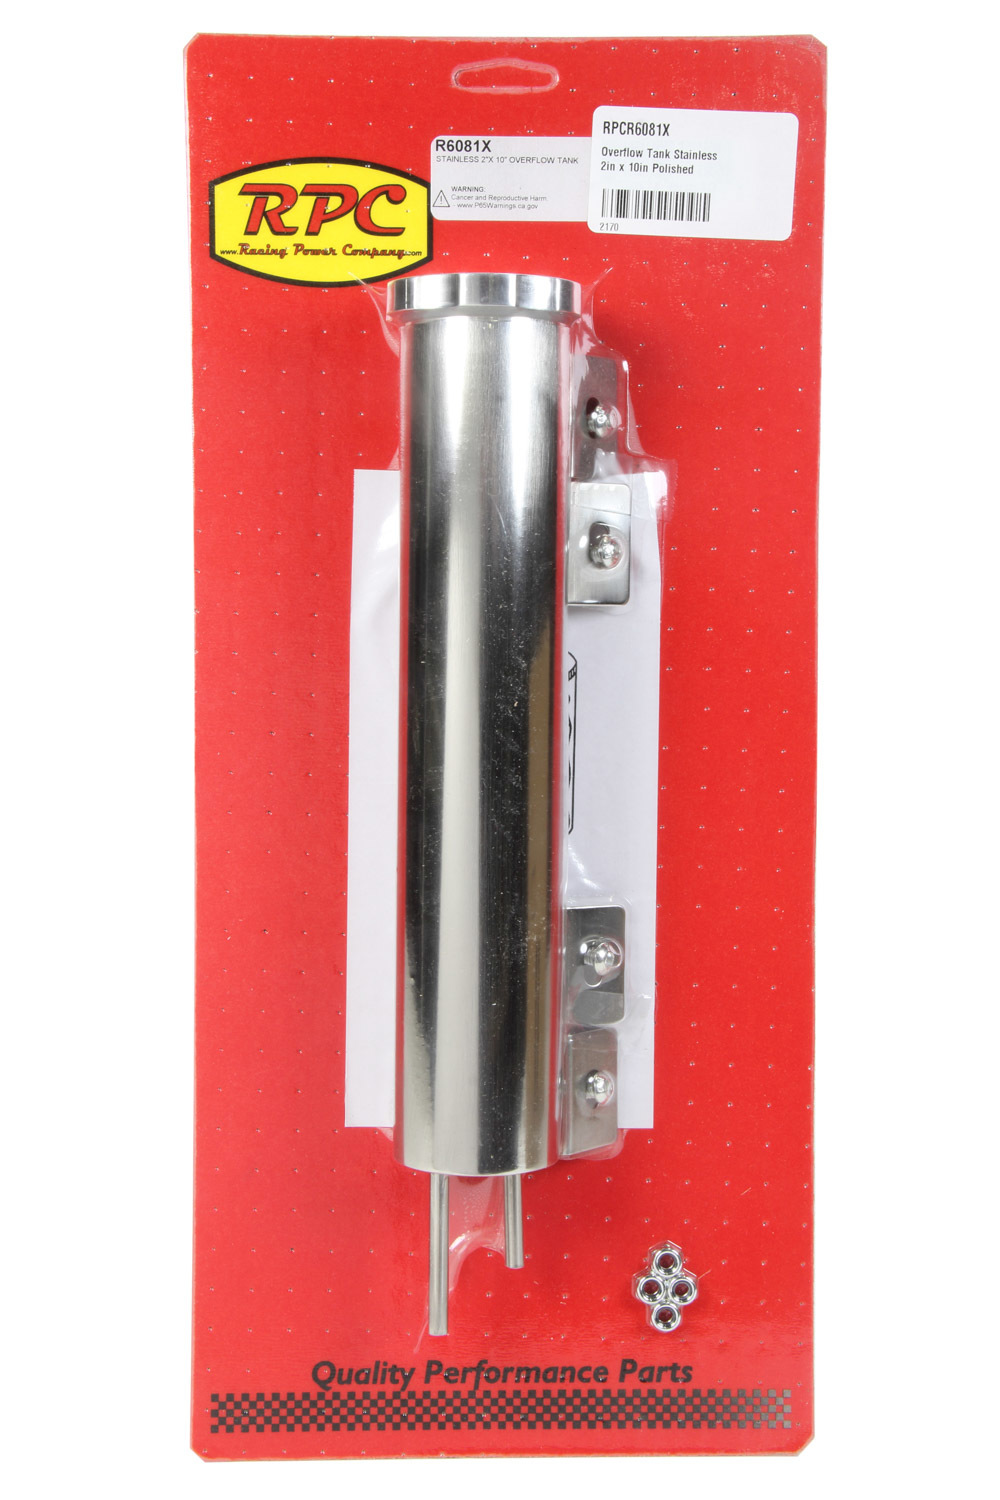 Racing Power Co-packaged Overflow Tank Stainless 2in x 10in Polished